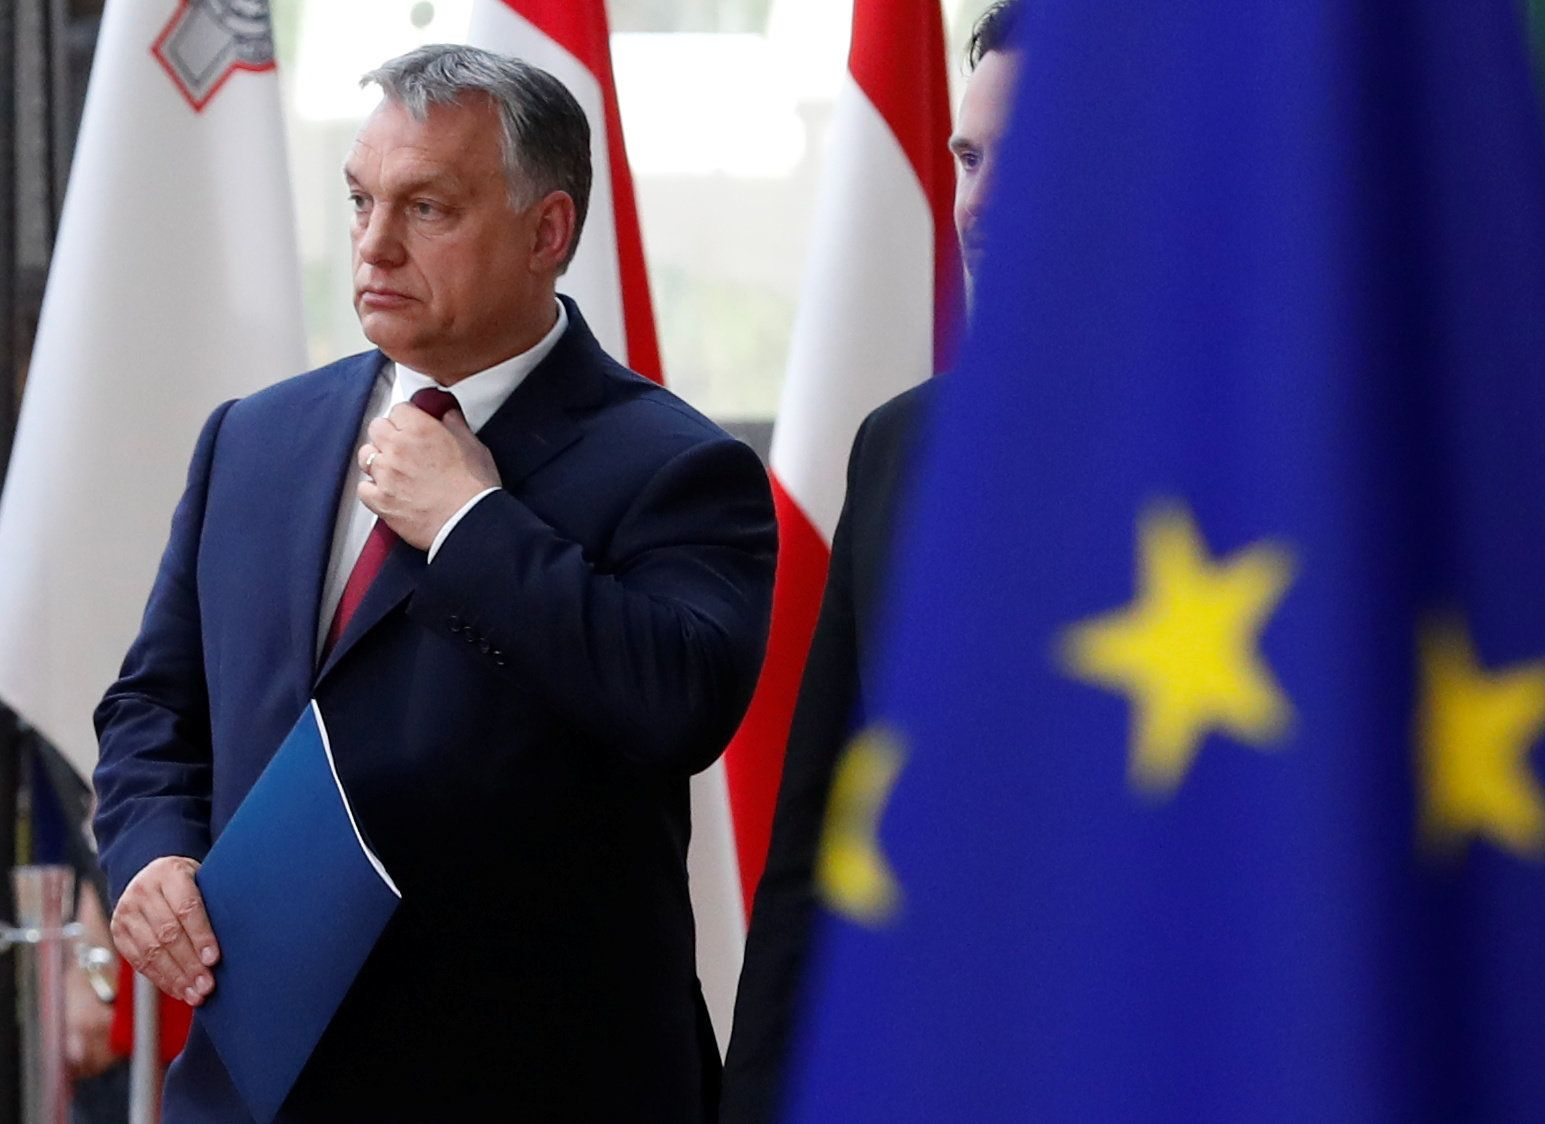 Hungarian Prime Minister Viktor Orban arrives at an European Union leaders summit in Brussels, Belgium, June 28, 2018. REUTERS/Yves Herman